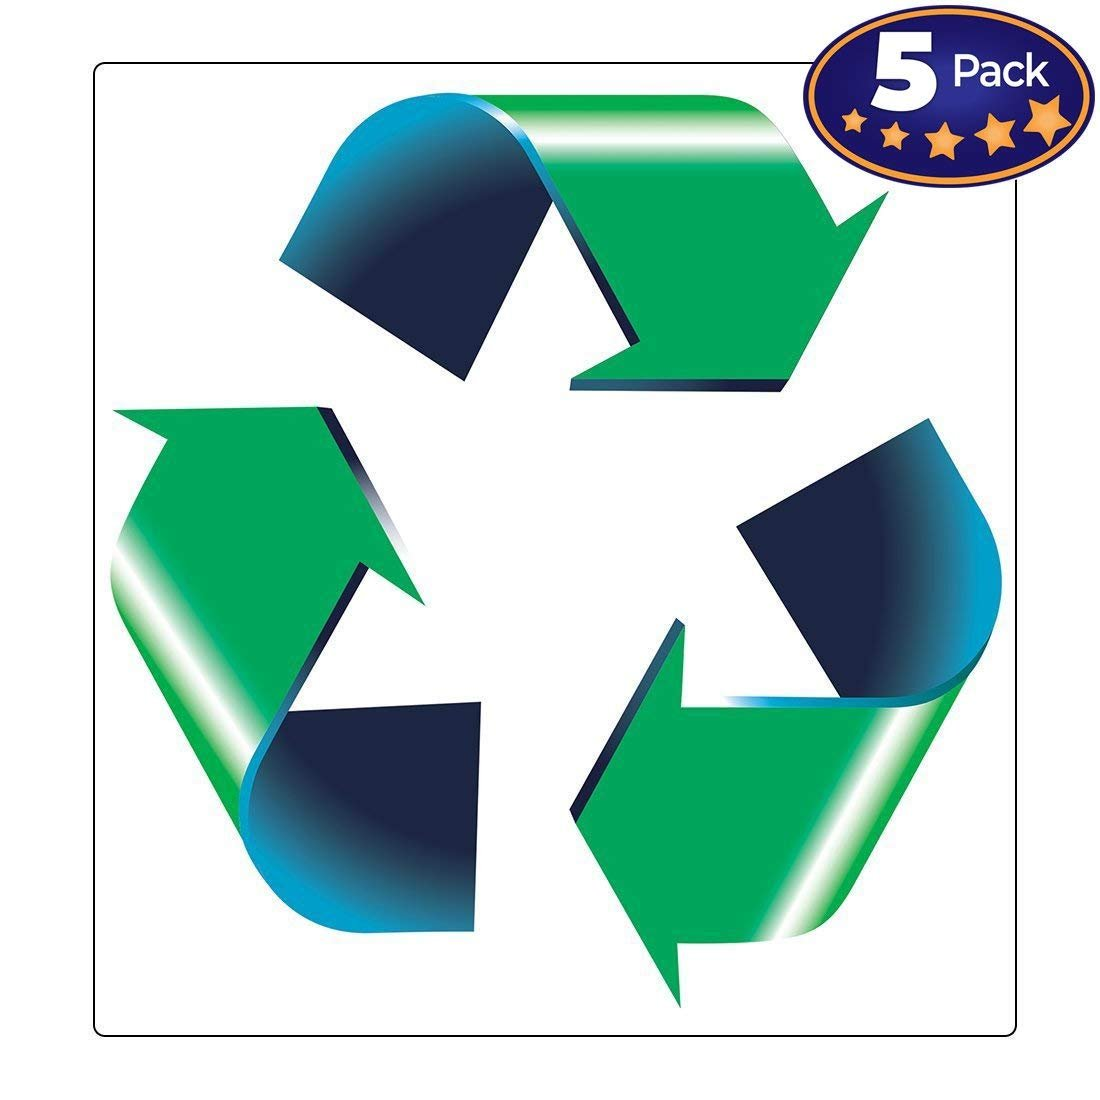 Retail Genius Oversized 8in Recycle Symbol Sticker 5 Pack for Green, White & Blue Recycling Bins & Cans. Large Decals ID Recycled Plastic, Paper, Cardboard, Glass, & Aluminum Recyclable Containers.